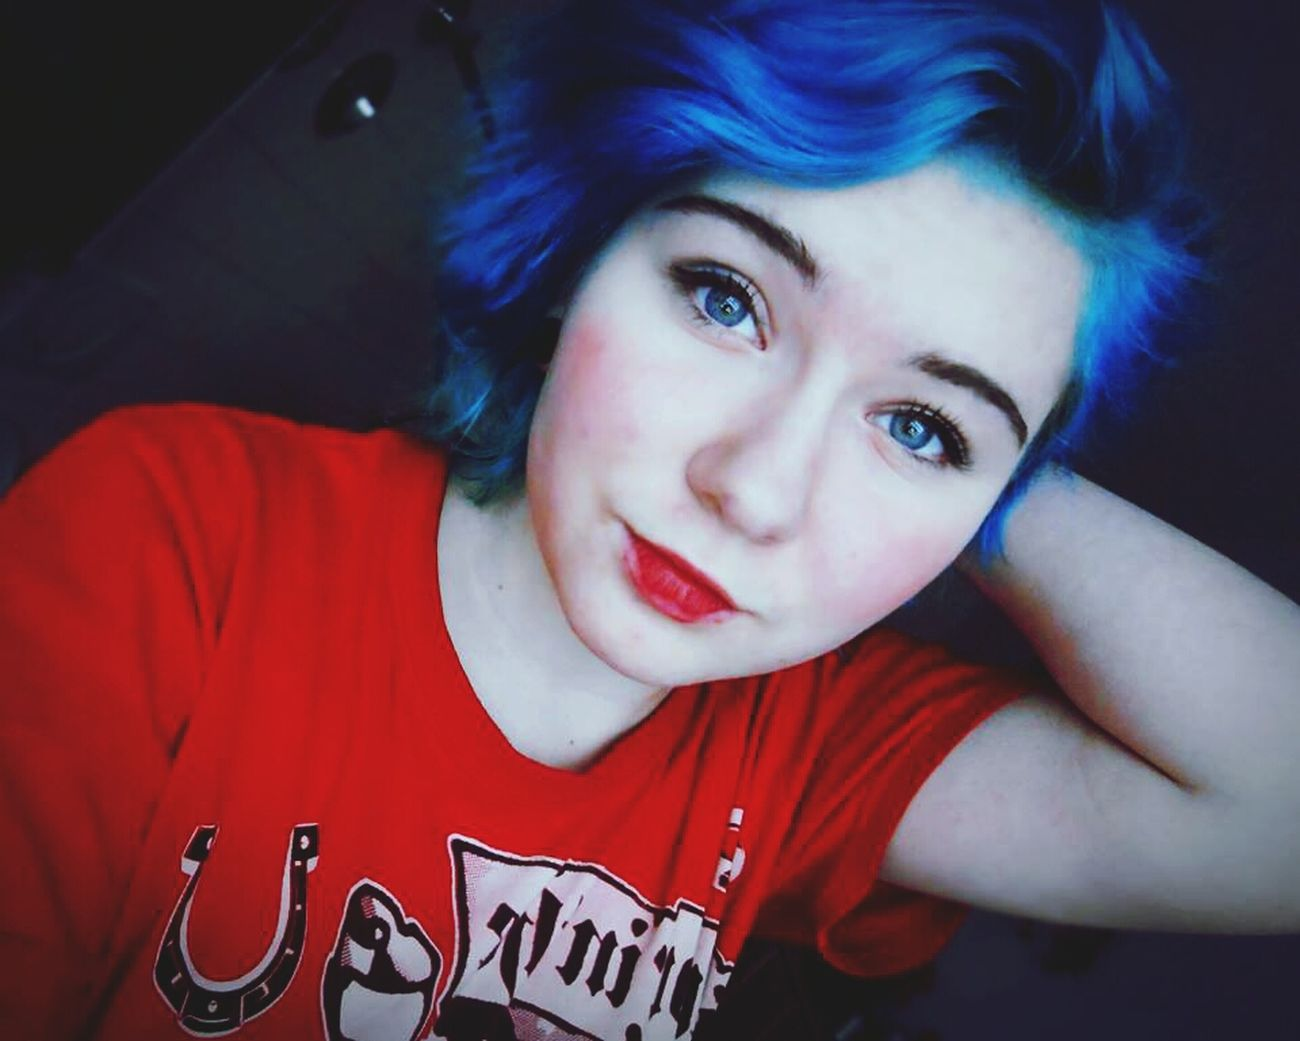 Taking Photos That's Me Blue Hair *o* Alternative Girls